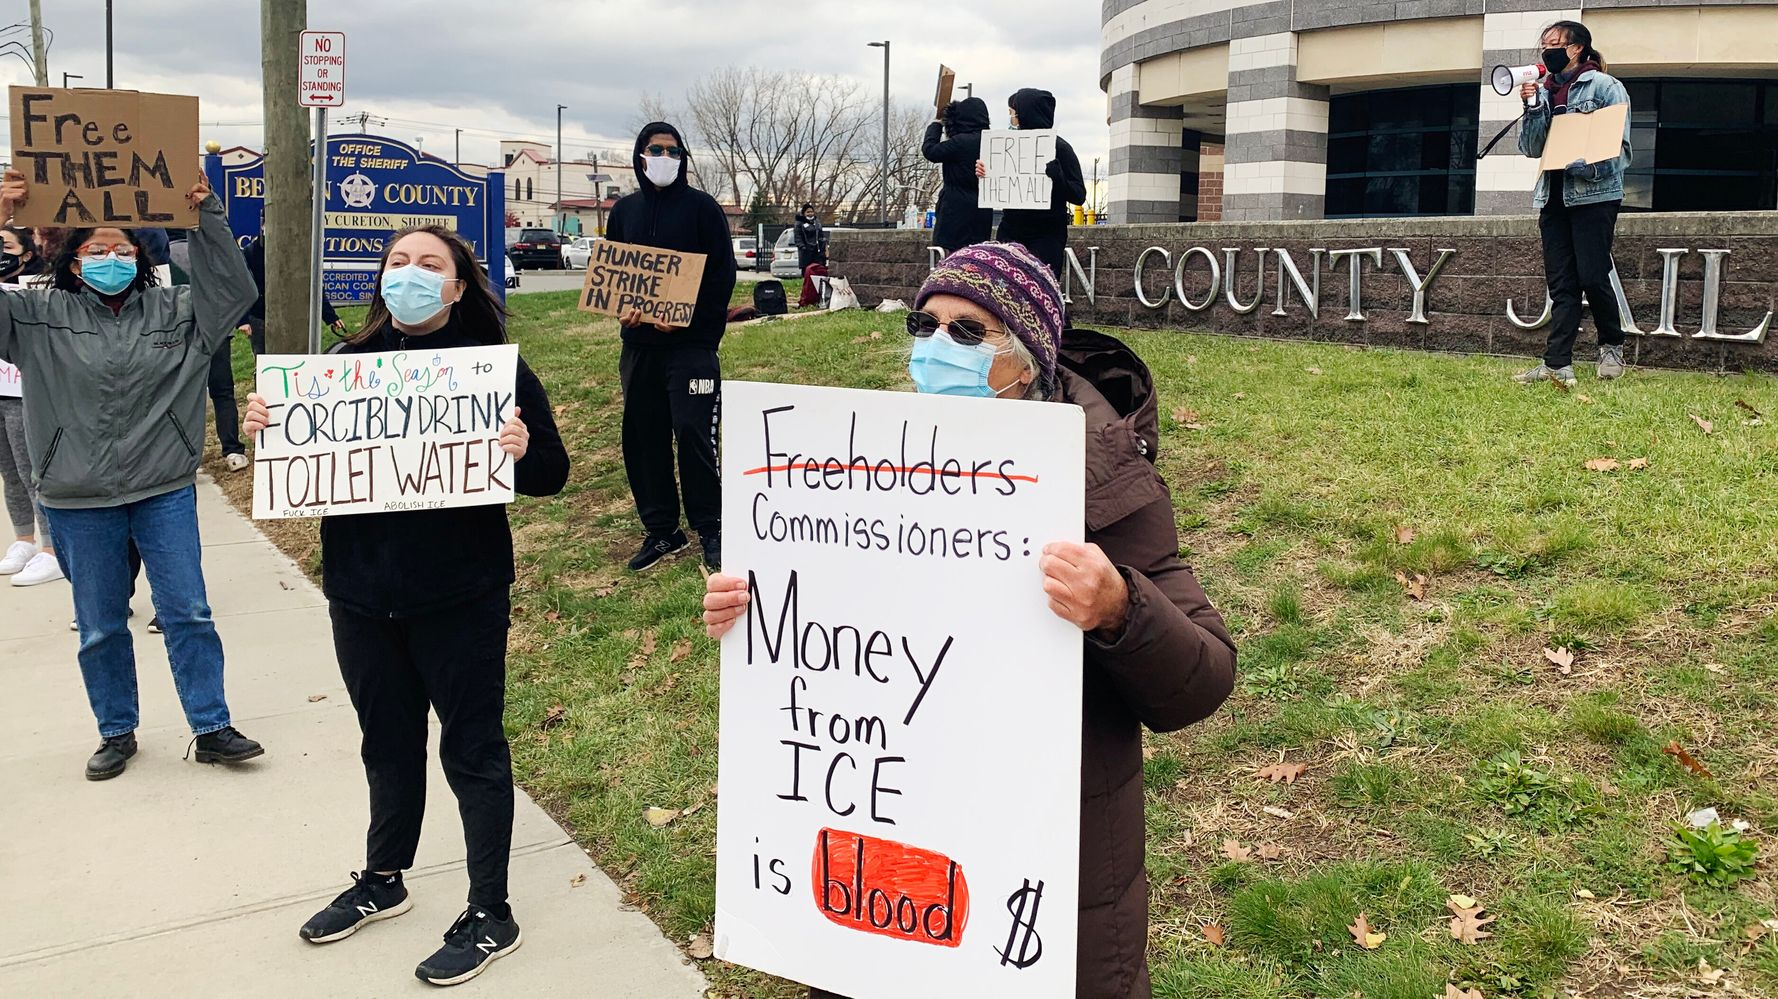 Immigrants At New Jersey ICE Facility On Hunger Strike To Protest Unsafe Conditions